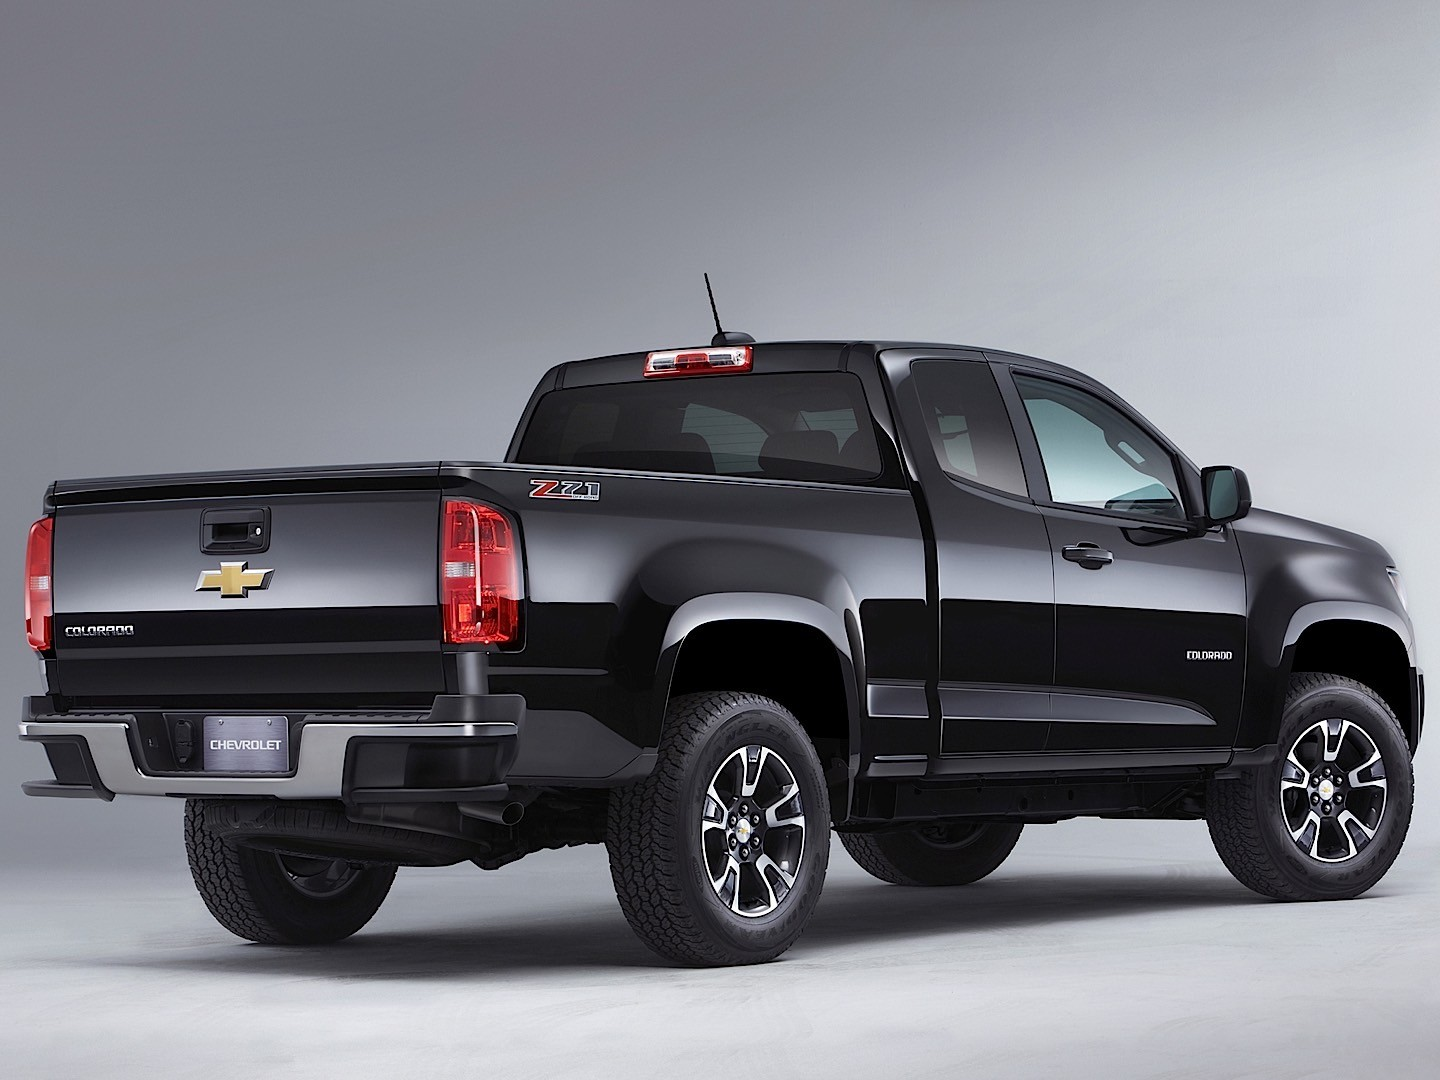 Chevrolet Colorado F Lt in addition Chevy Colorado Extended Cab additionally Cr Cars Inline Chevrolet Colorado Rear Seat likewise  together with Chevrolet Colorado Extended Cab. on 2015 chevy colorado extended cab interior